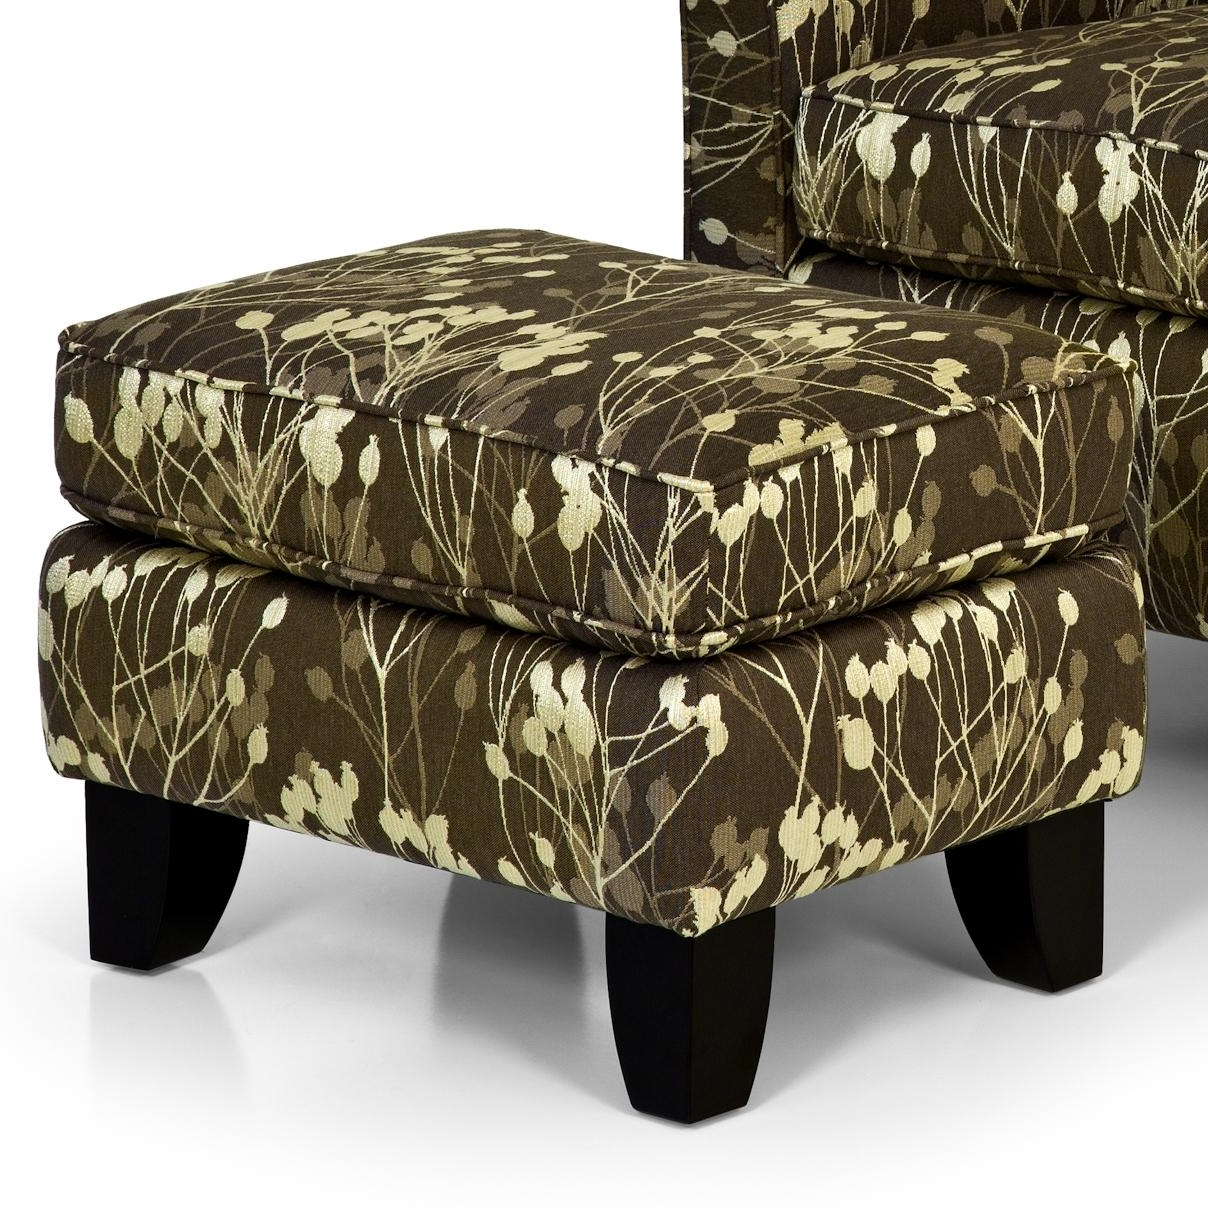 Stanton Accent Chairs And Ottomans Contemporary Accent Chair Throughout Favorite Chairs With Ottoman (View 14 of 20)